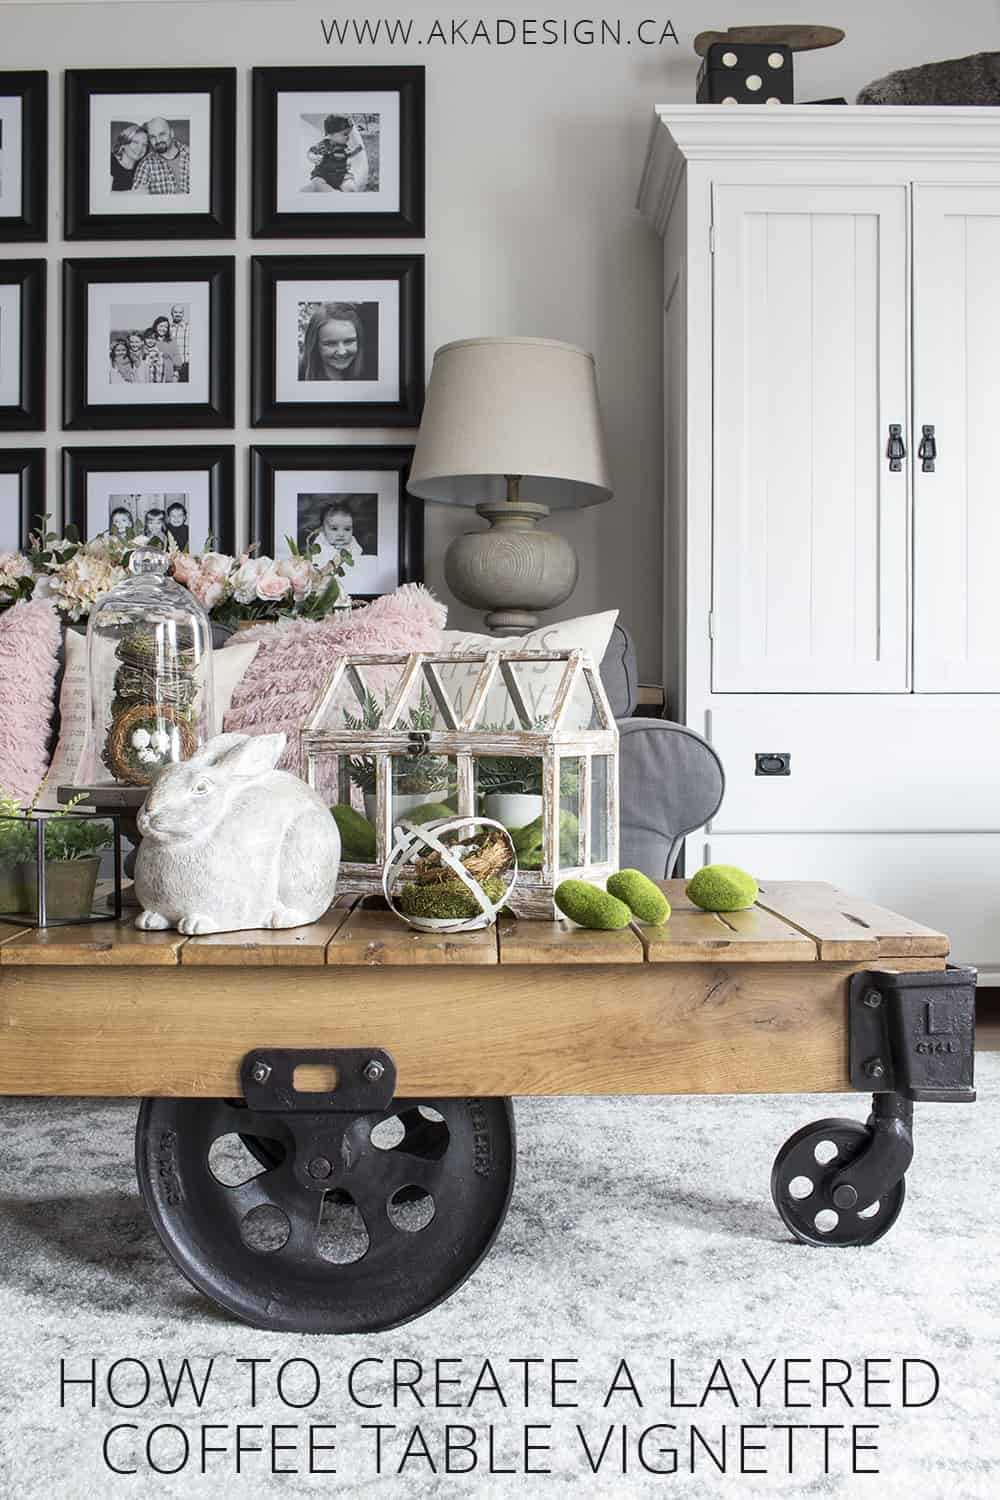 how to create a layered coffee table vignette